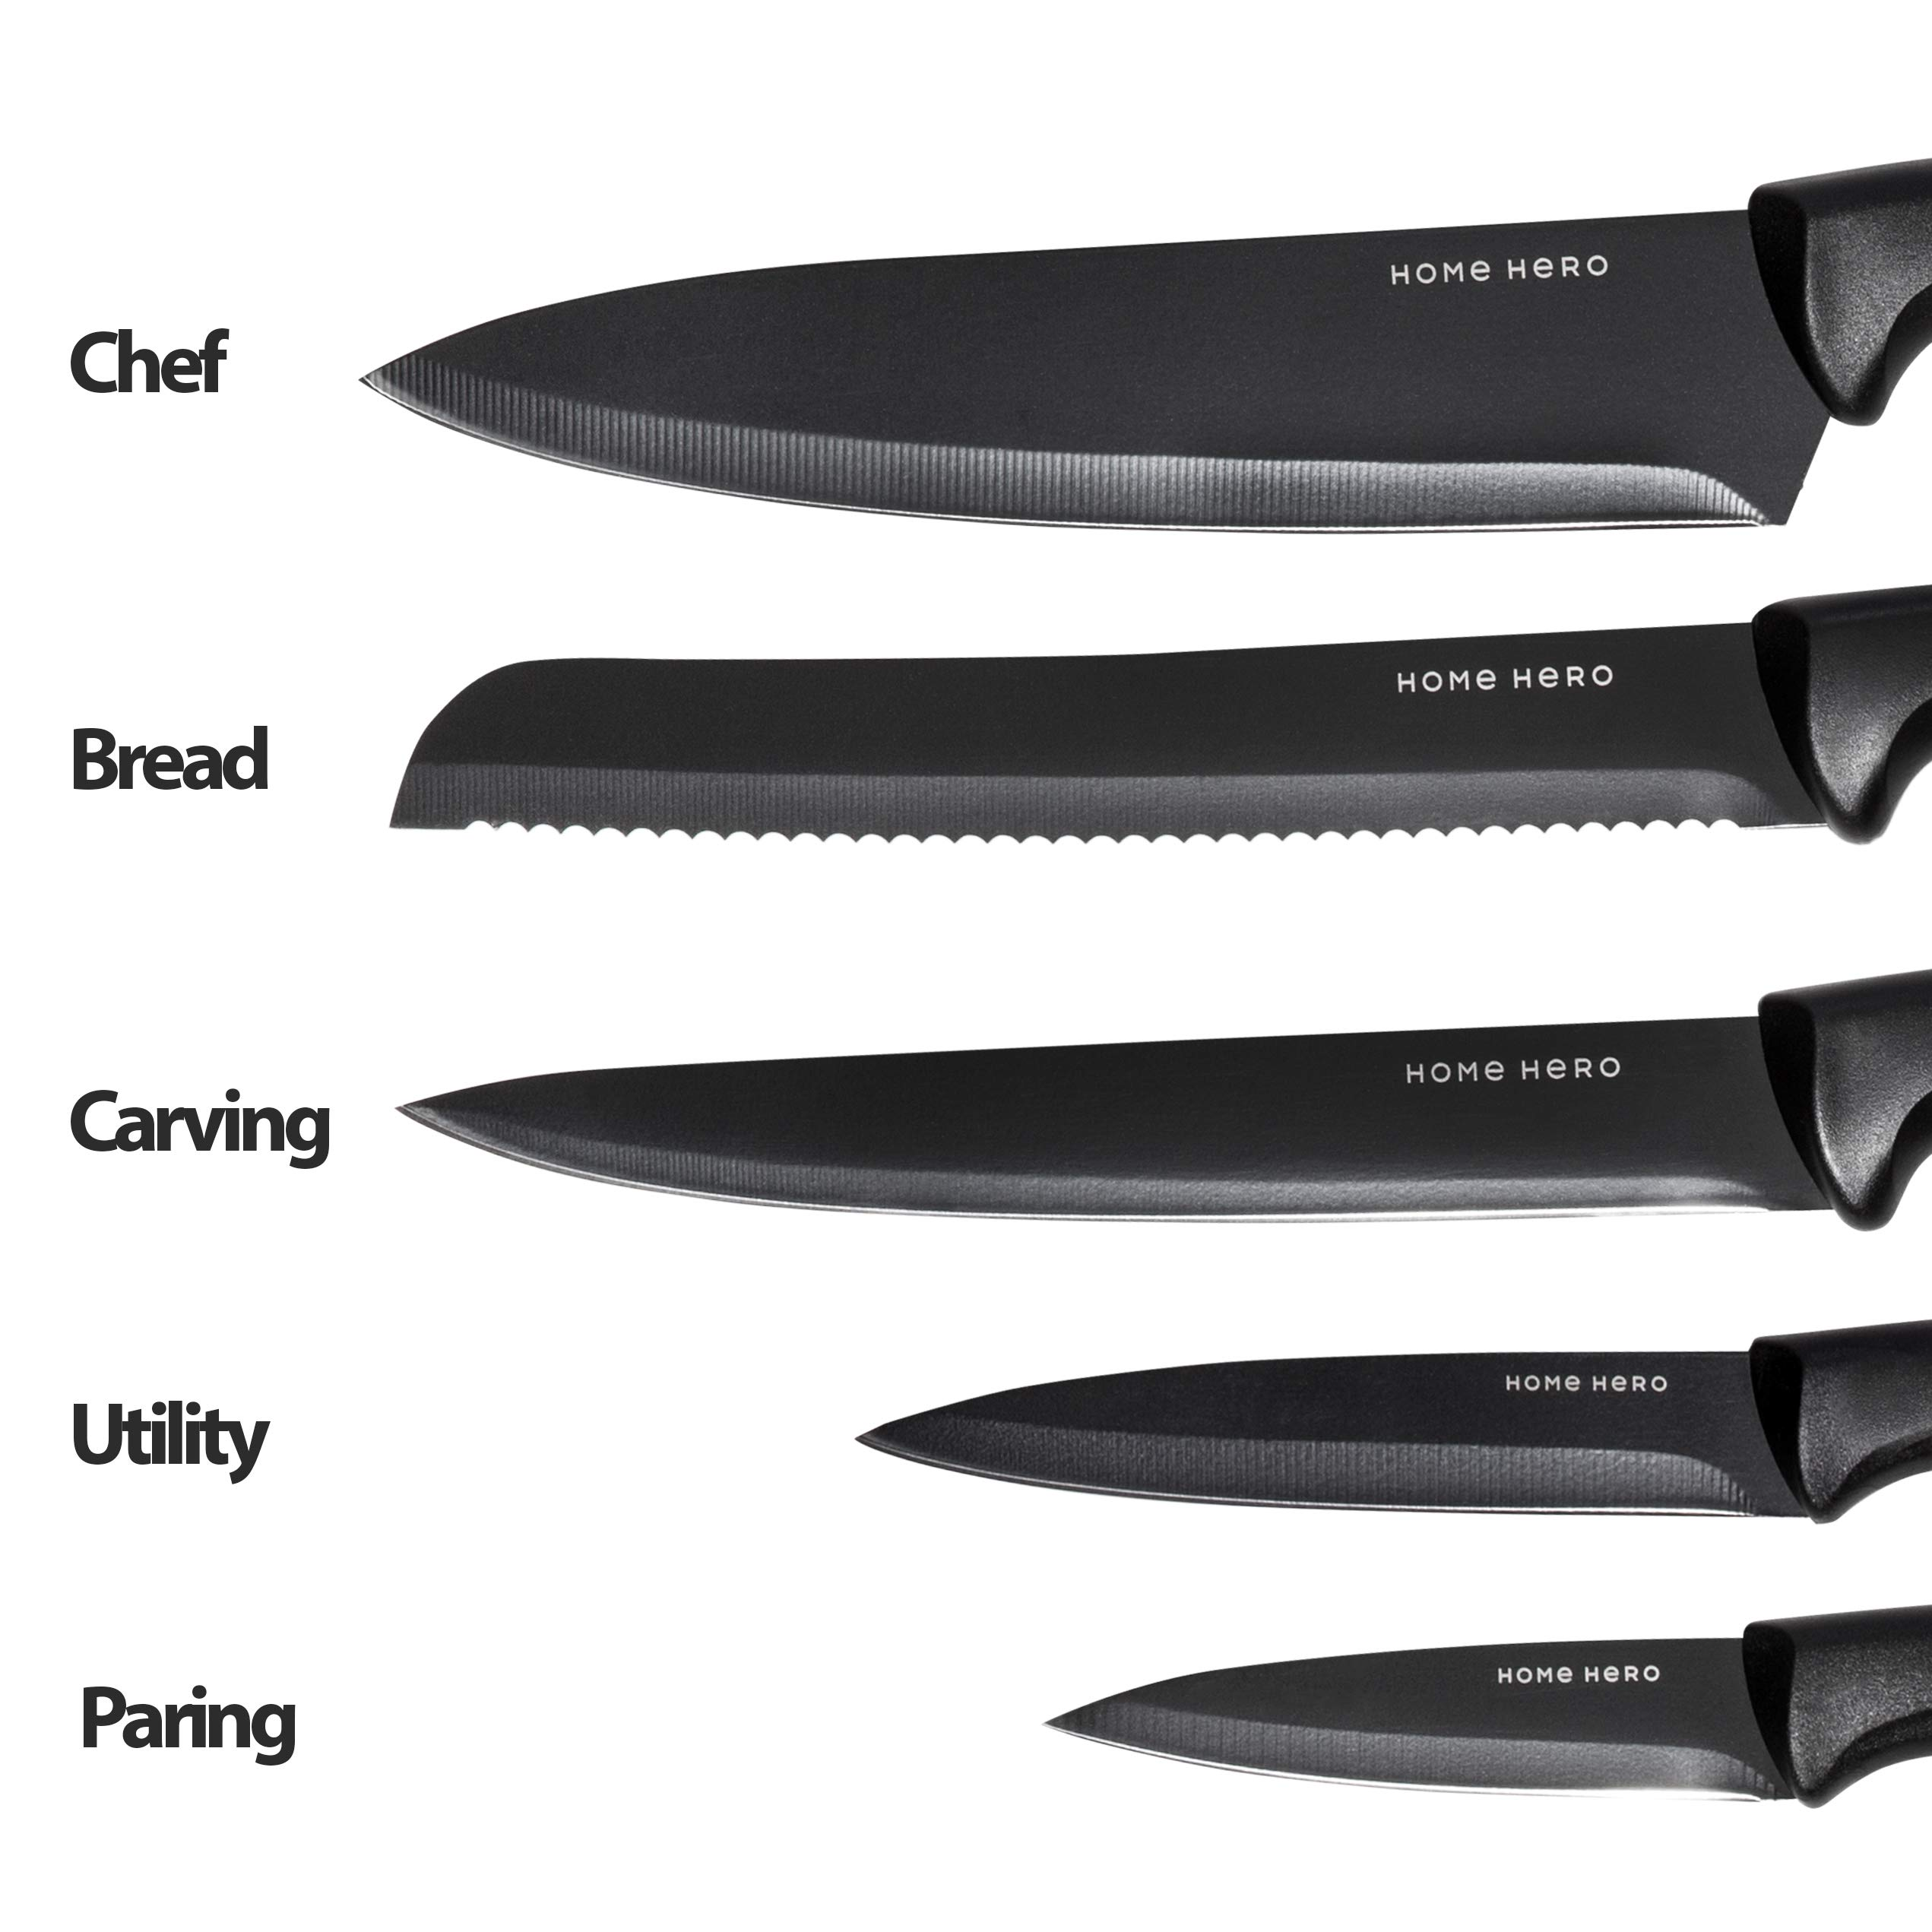 Chef Knife Set Knives Kitchen Set - Kitchen Knives Set Kitchen Knife Set with Stand - Plus Professional Knife Sharpener - 7 Piece Stainless Steel Cutlery Knives Set by HomeHero by HomeHero (Image #3)